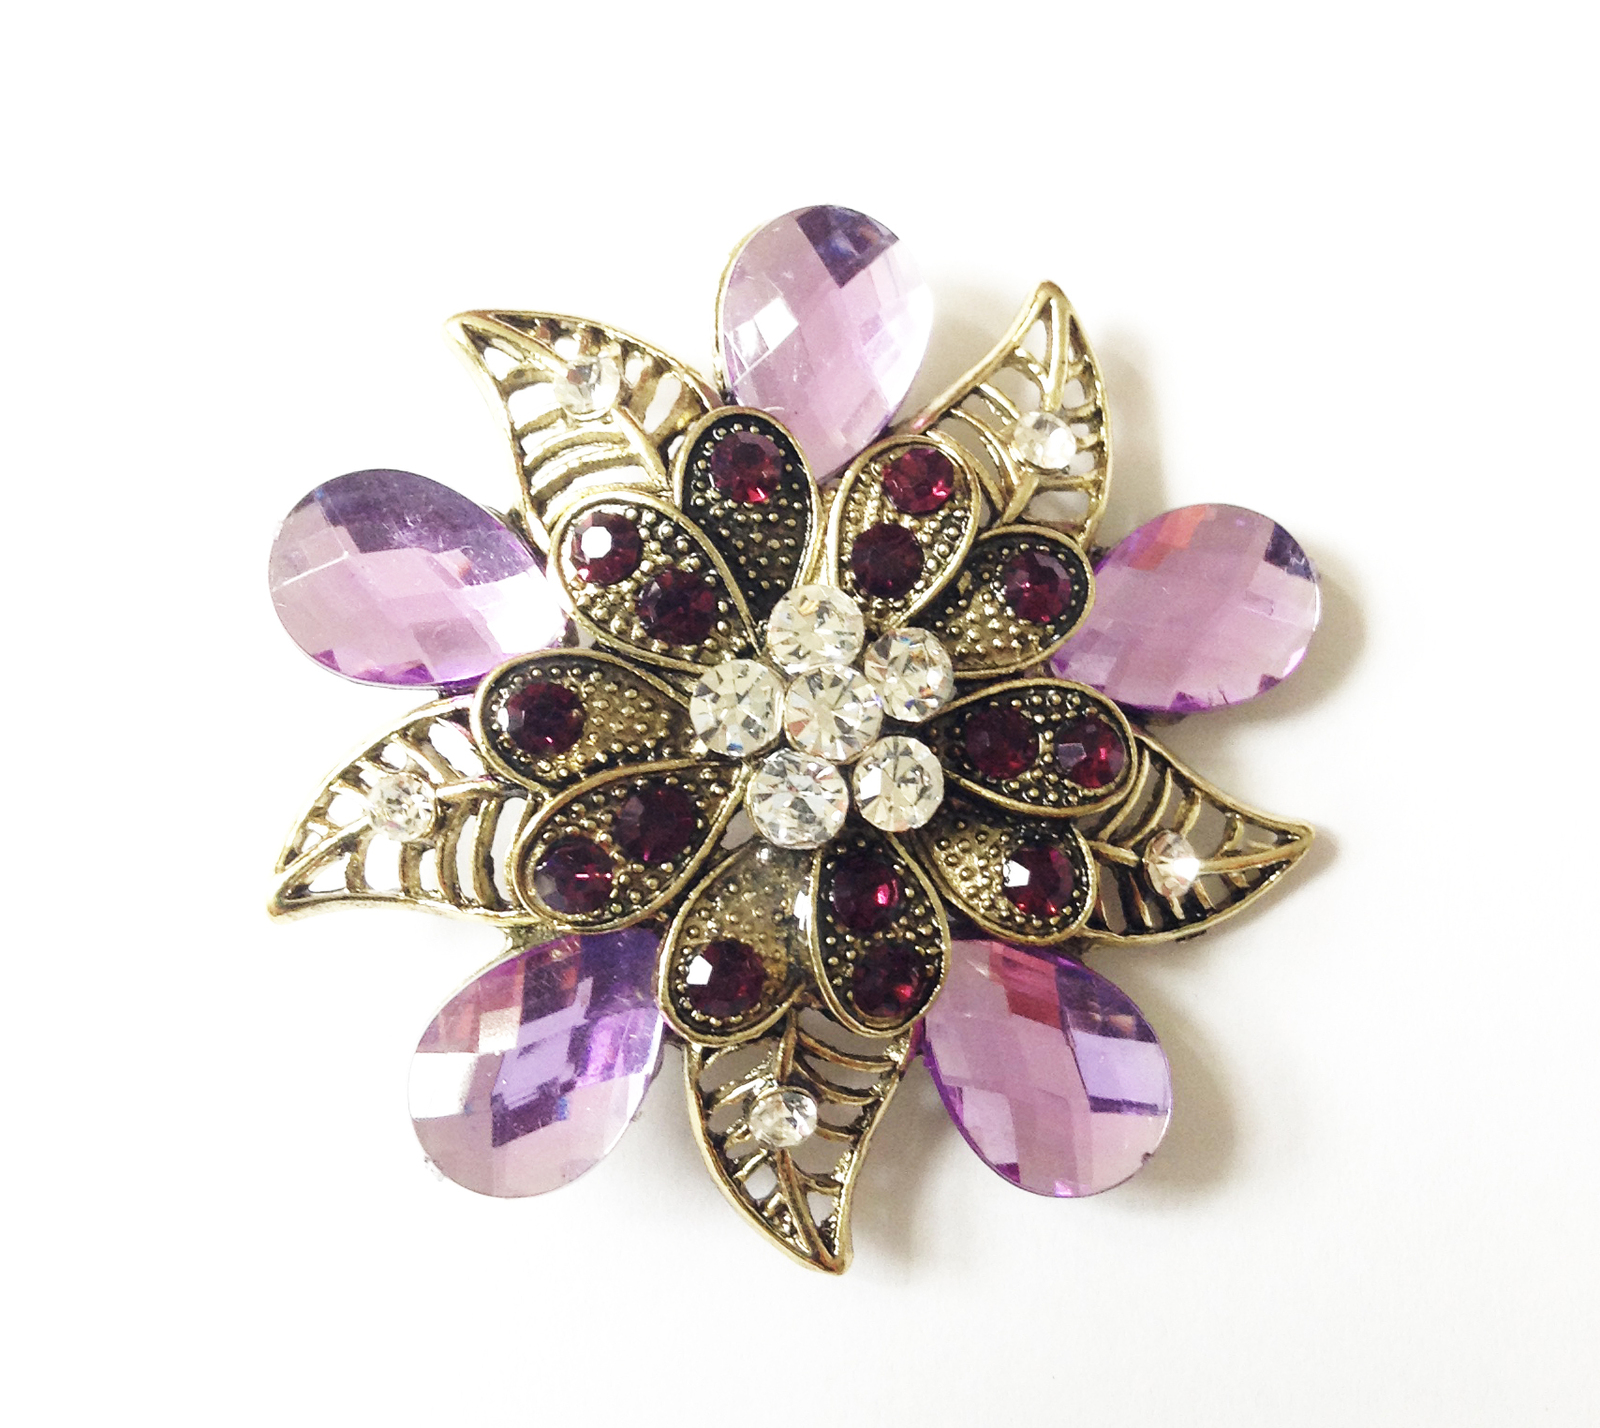 Primary image for  Rhinestone Crystal Flower Brooch Pin.Various colour